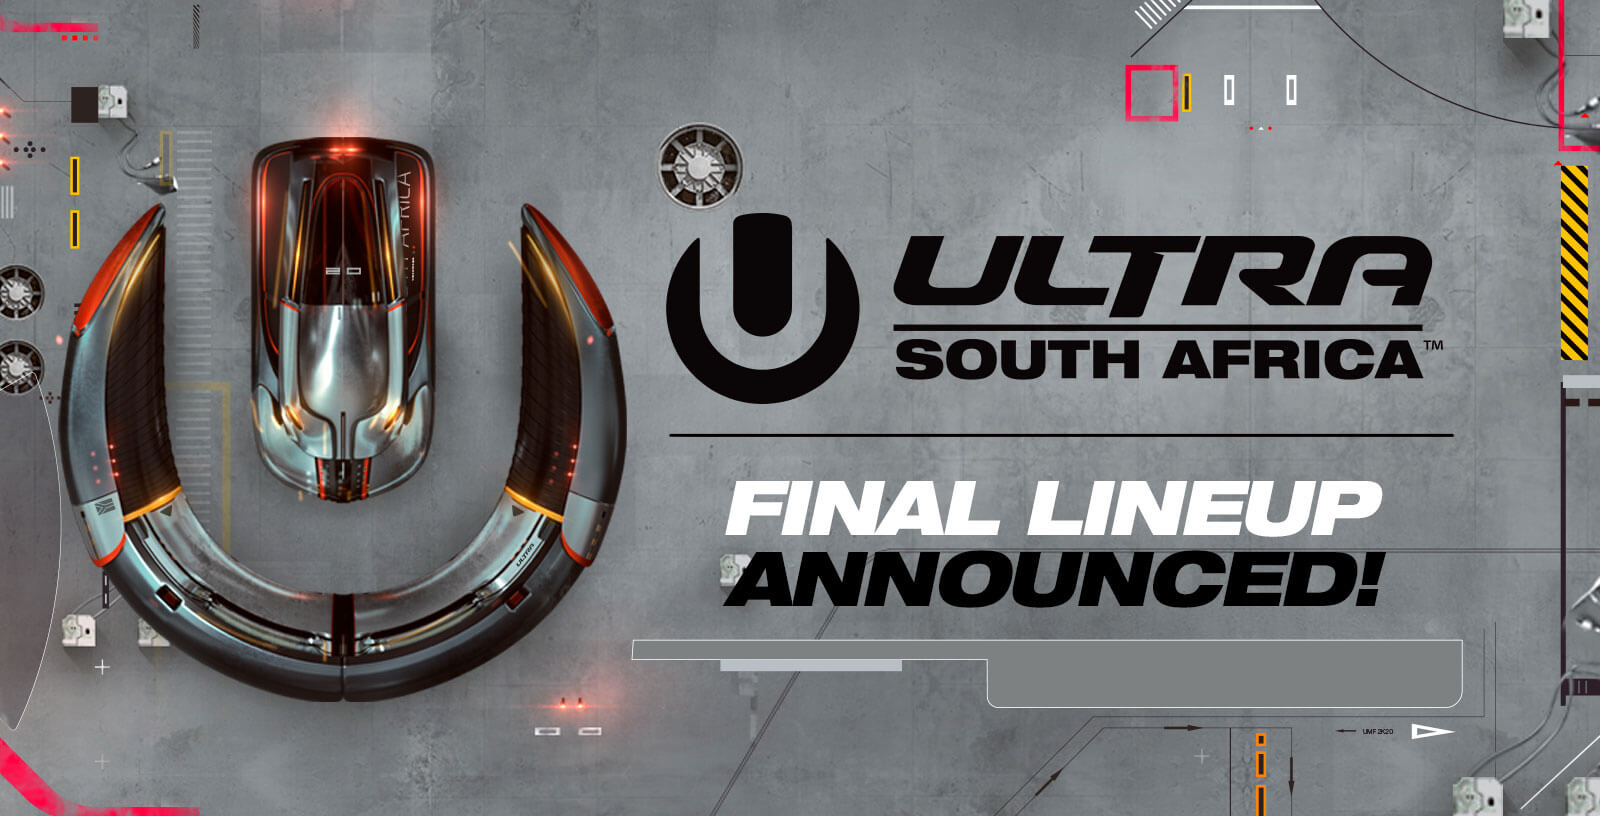 ULTRA South Africa Releases Final Lineup